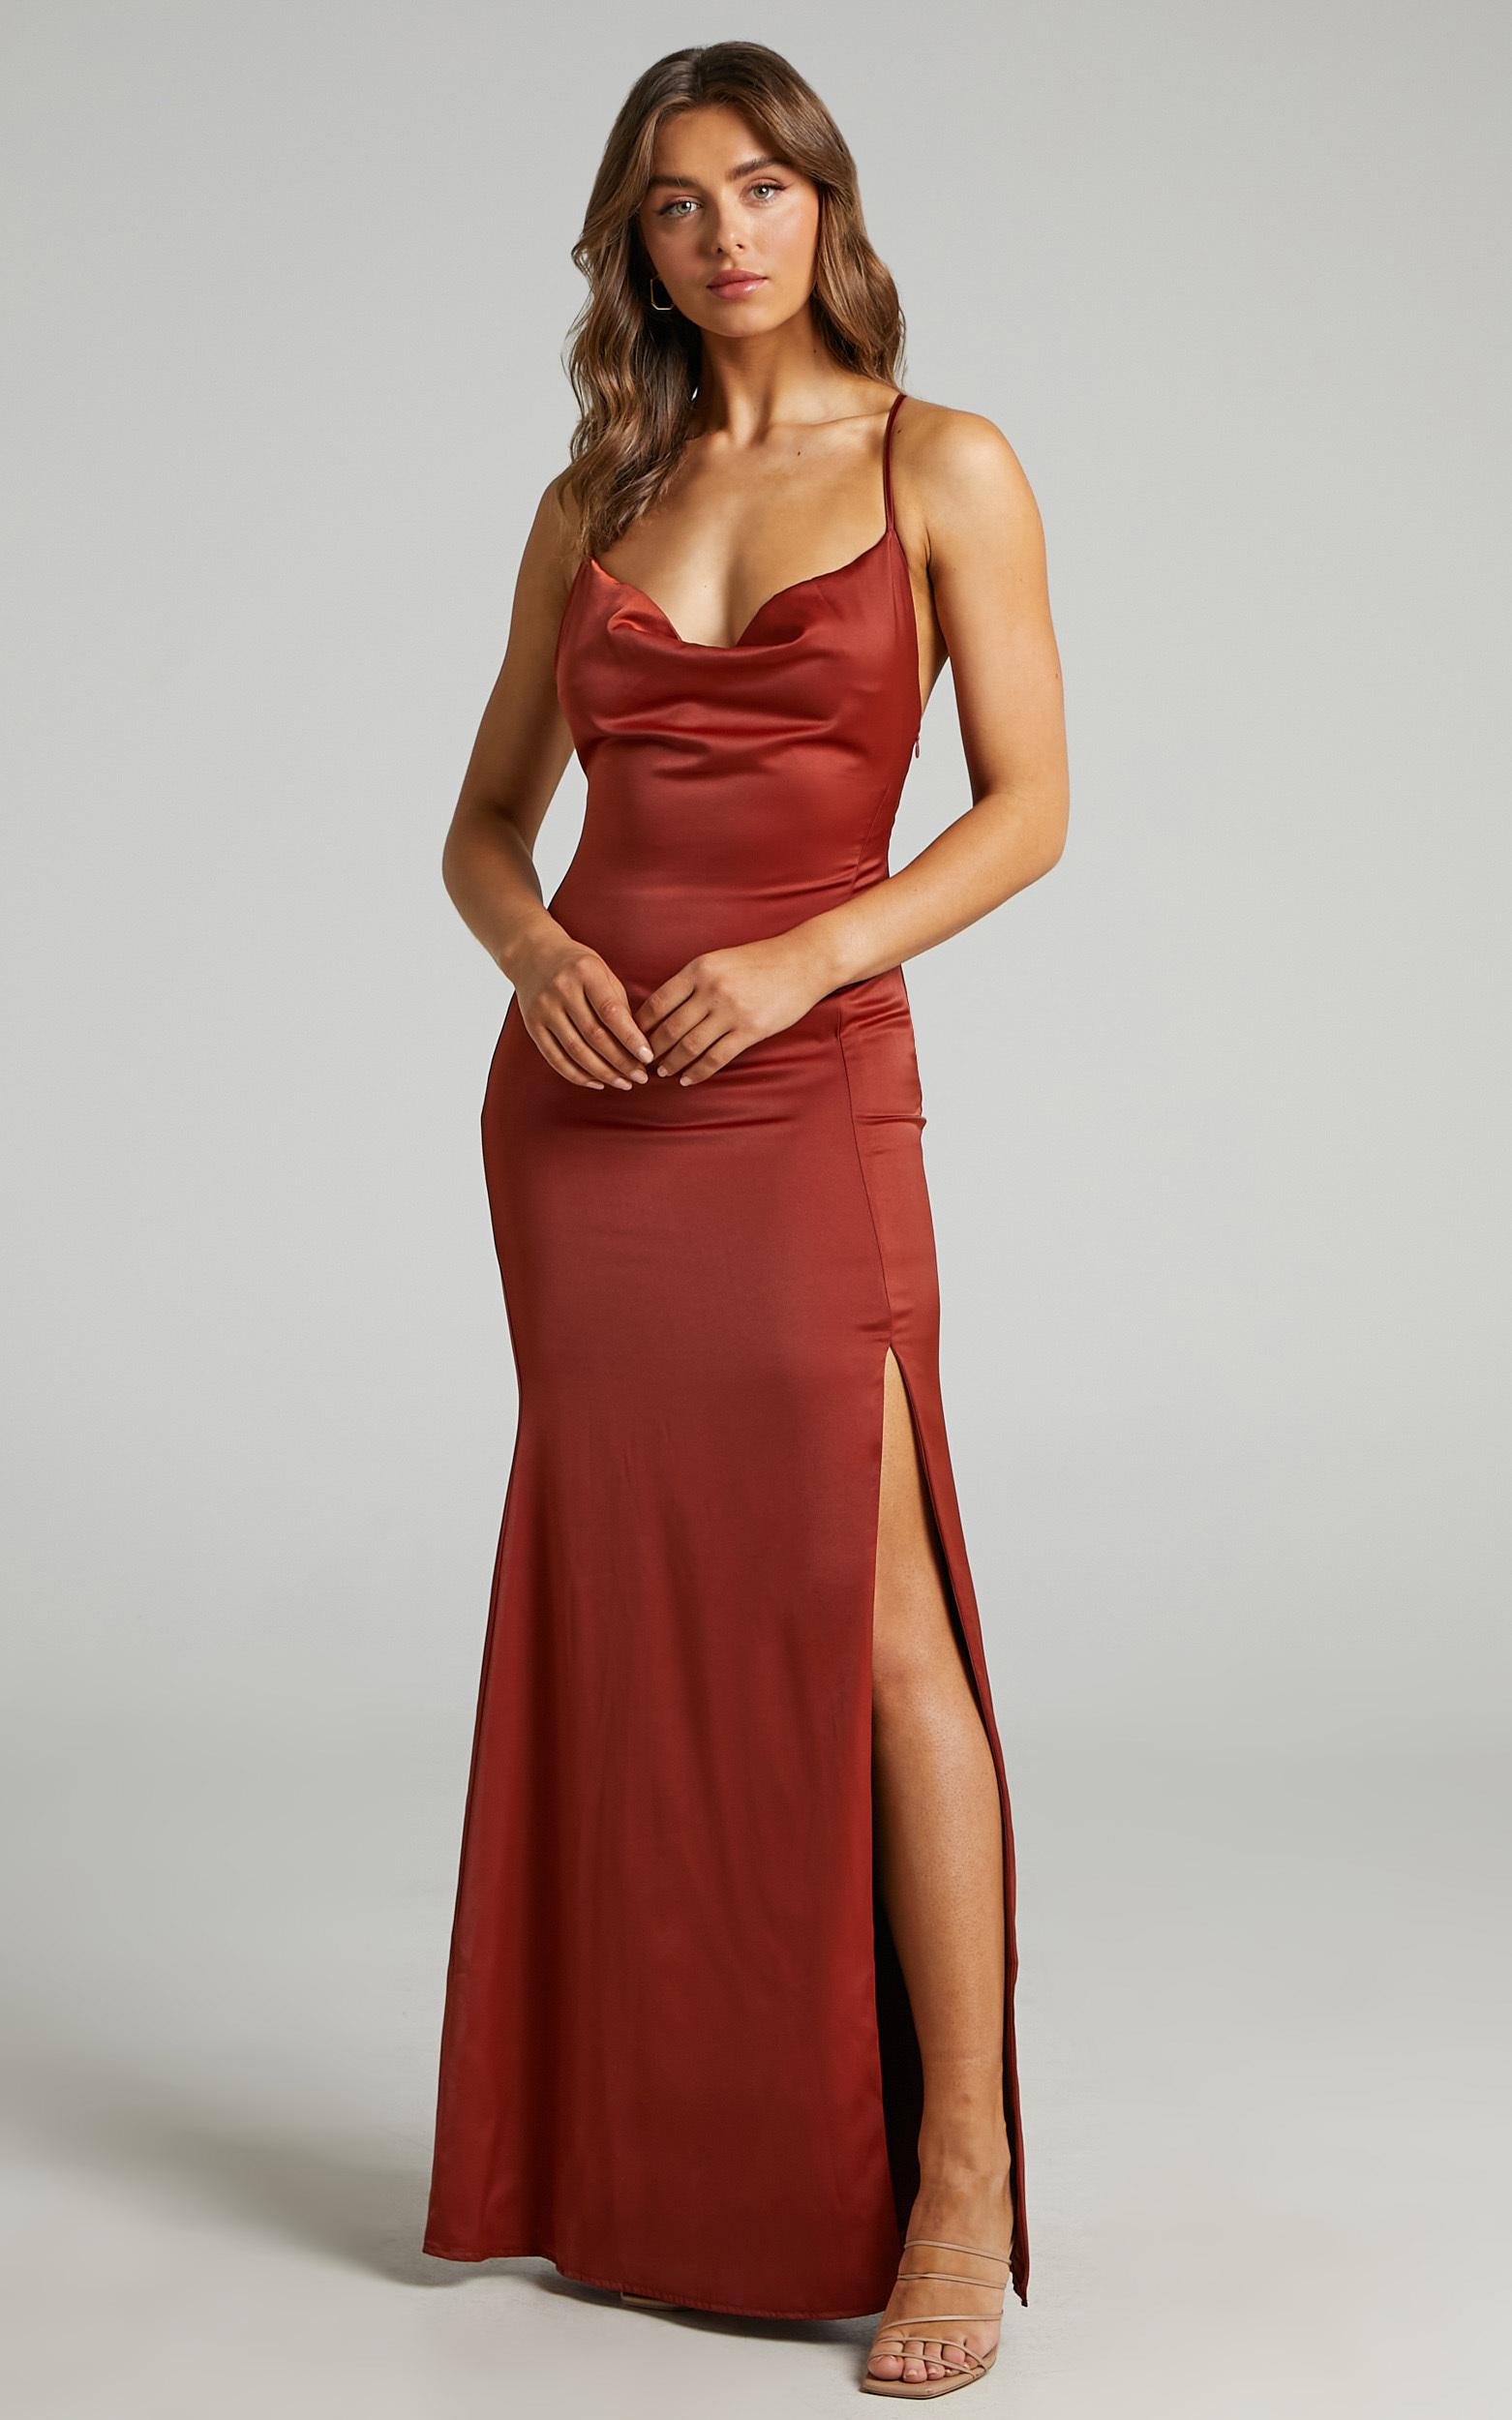 A Final Toast Dress in Copper Satin - 06, BRN1, hi-res image number null